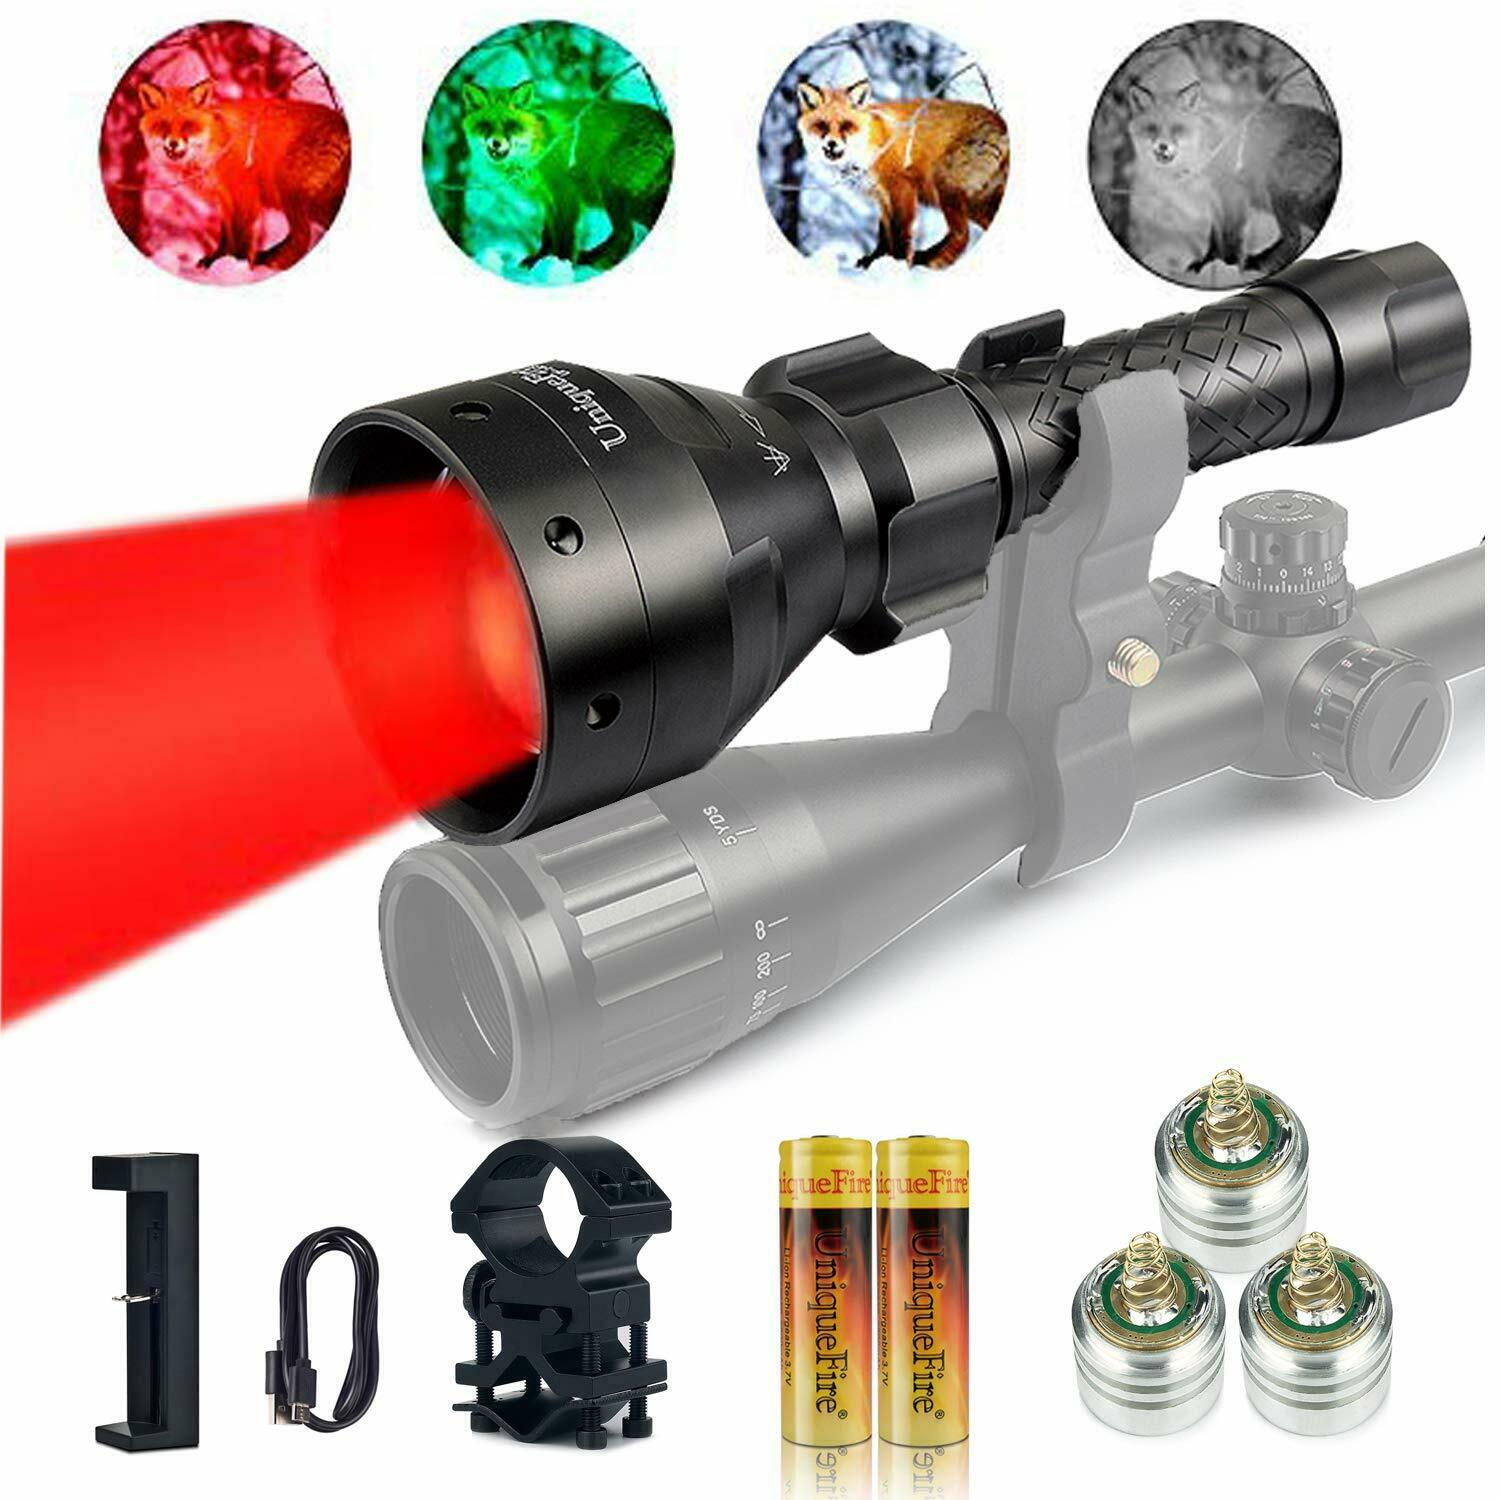 UniqueFire 1405 T67  Red Light LED 18650 Flashlight Zoom Torch+Charger+Mount+Pill  first time reply